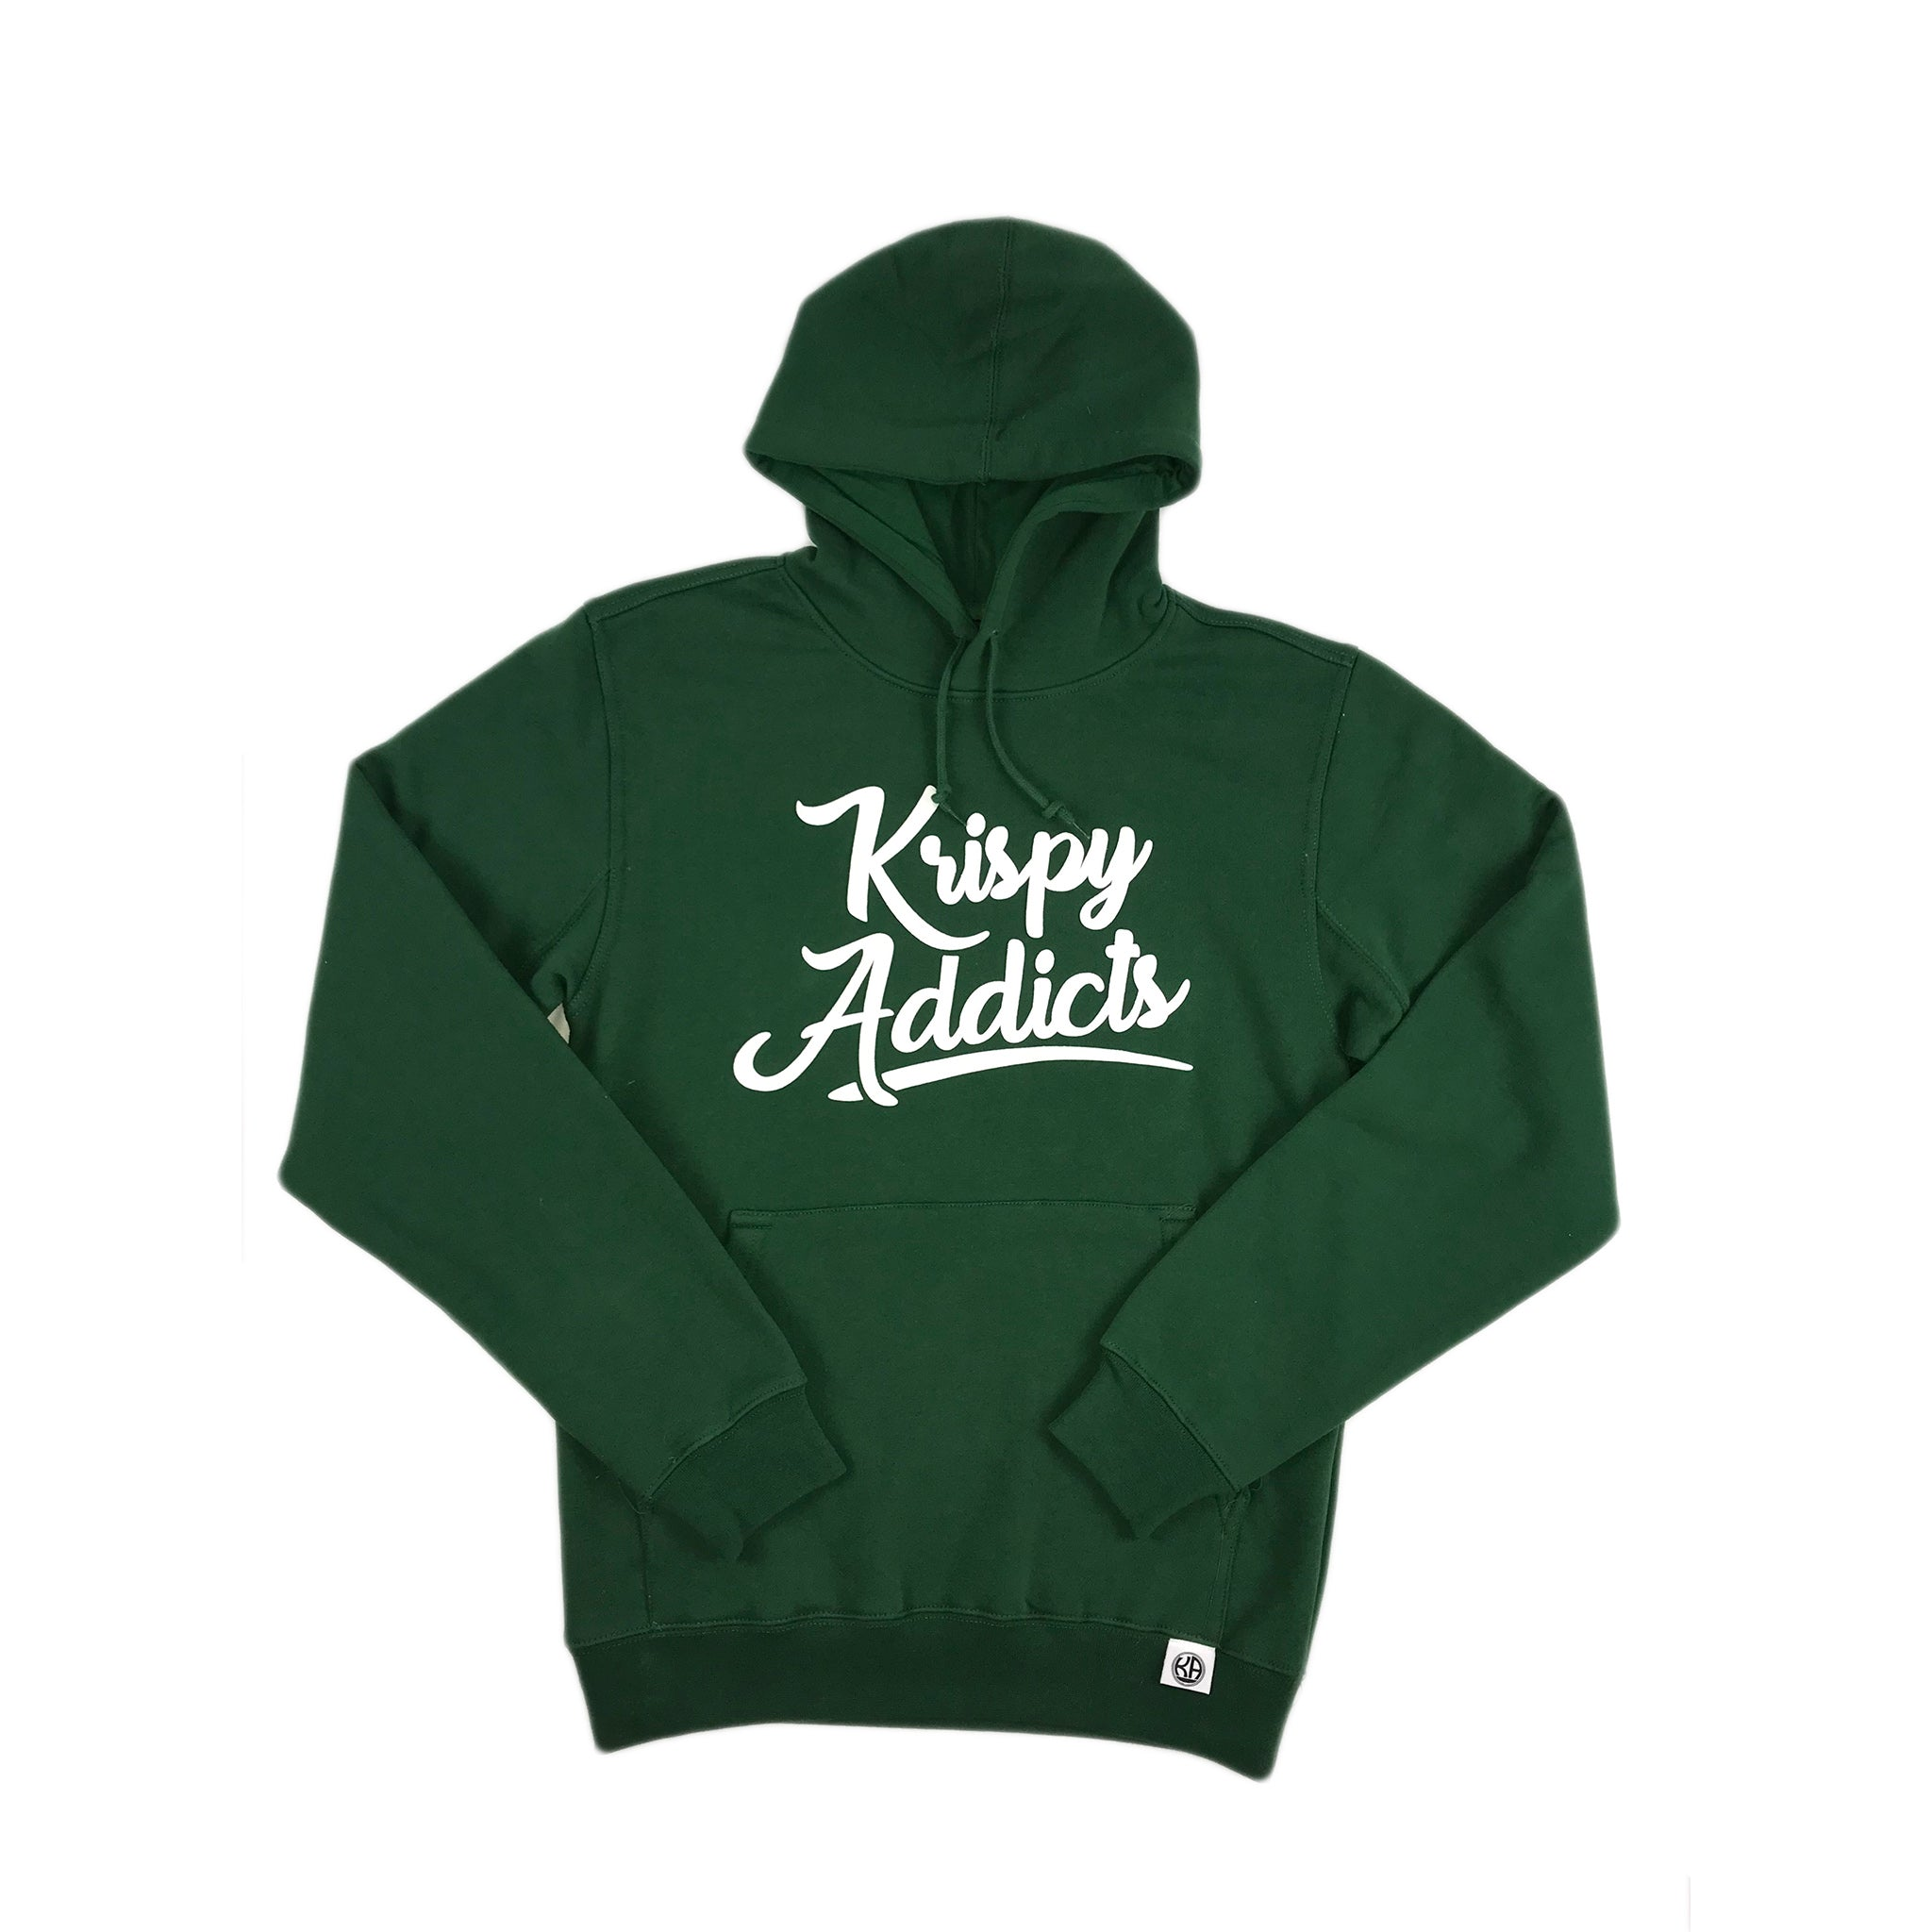 Krispy Addicts - Hoodie (dark green)